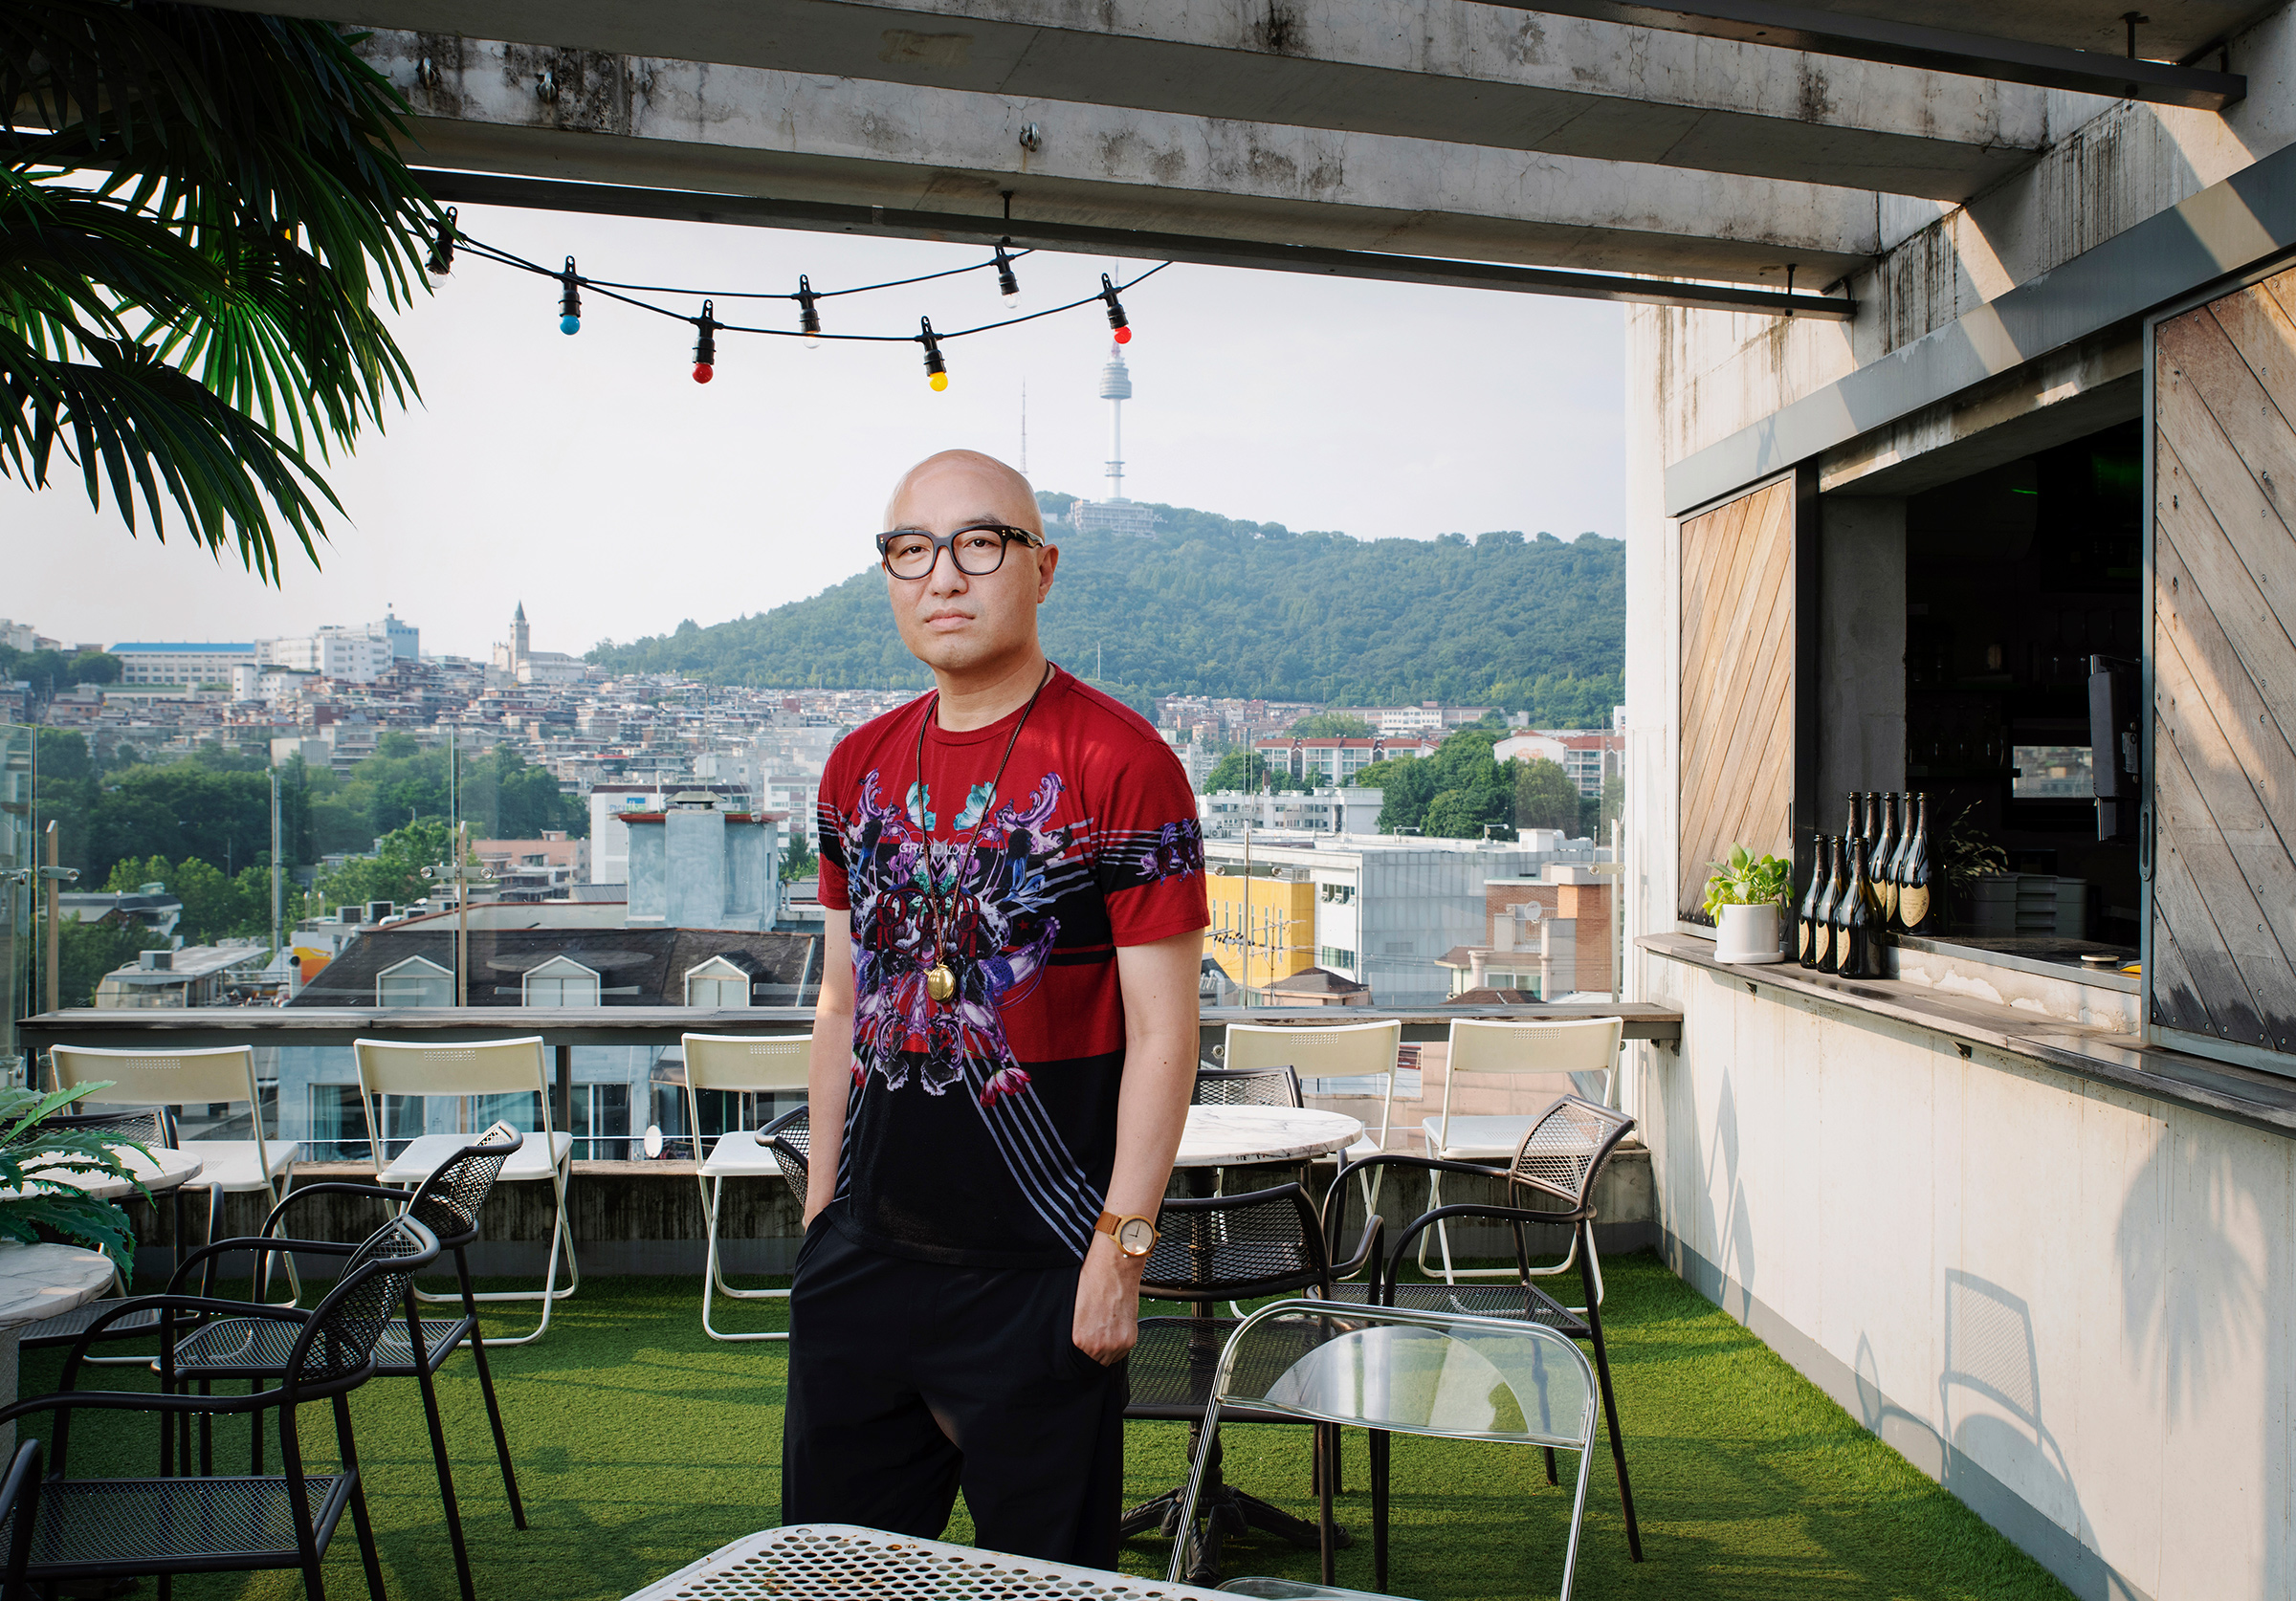 Hong Seok-cheon poses for a portrait in where used to be his rooftop restaurant, My Sky, in Itaewon, Seoul, on June 23.  All around the world, there are neighborhoods here and there that recognize diversity,  he says.  I think in Korea, that's Itaewon. And I realized my dream and spent my youth here.  After coming out in 2000 and being ousted from television jobs, he opened restaurants in the neighborhood.  I wanted to create spaces where LGBTQ people would coexist with the heterosexual community. So I chose restaurants. Of course, it was difficult at first. The people who came to our restaurant had a very preconceived notion because I was the owner. But as time passed, people recognized my sincerity and hard work and really enjoyed those spaces. It's very sad that they are gone.  He says that he feels constant pressure to become a successful LGBTQ role model for Koreans, a burden he has been singularly carrying as the most prominent celebrity who has come out.